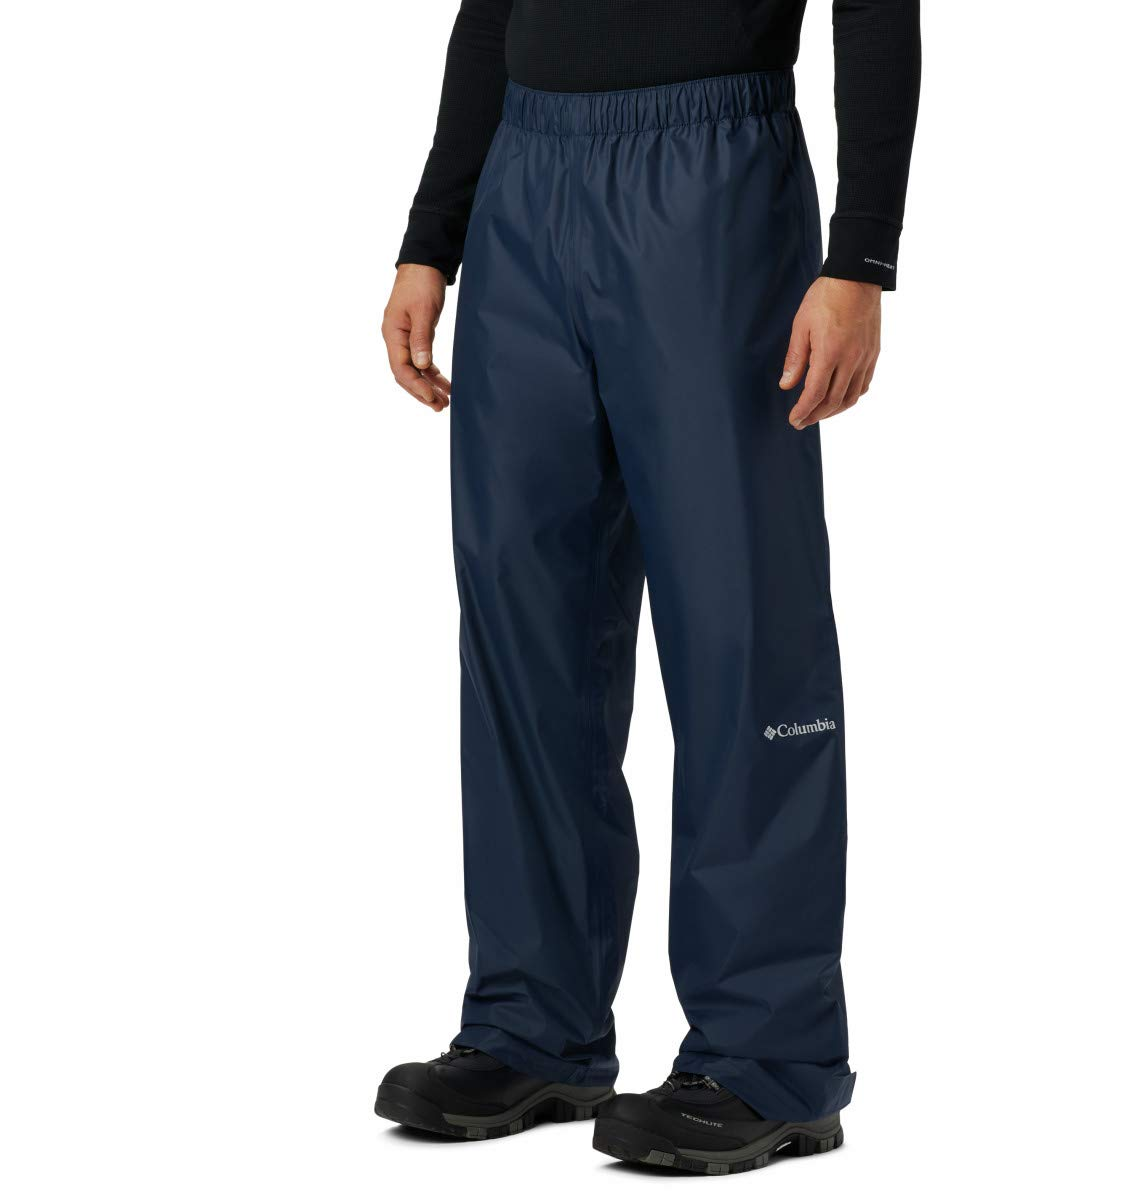 Columbia Men's Big and Tall Rebel Roamer Rain Pant, Collegiate Navy, 3XT x 36 by Columbia